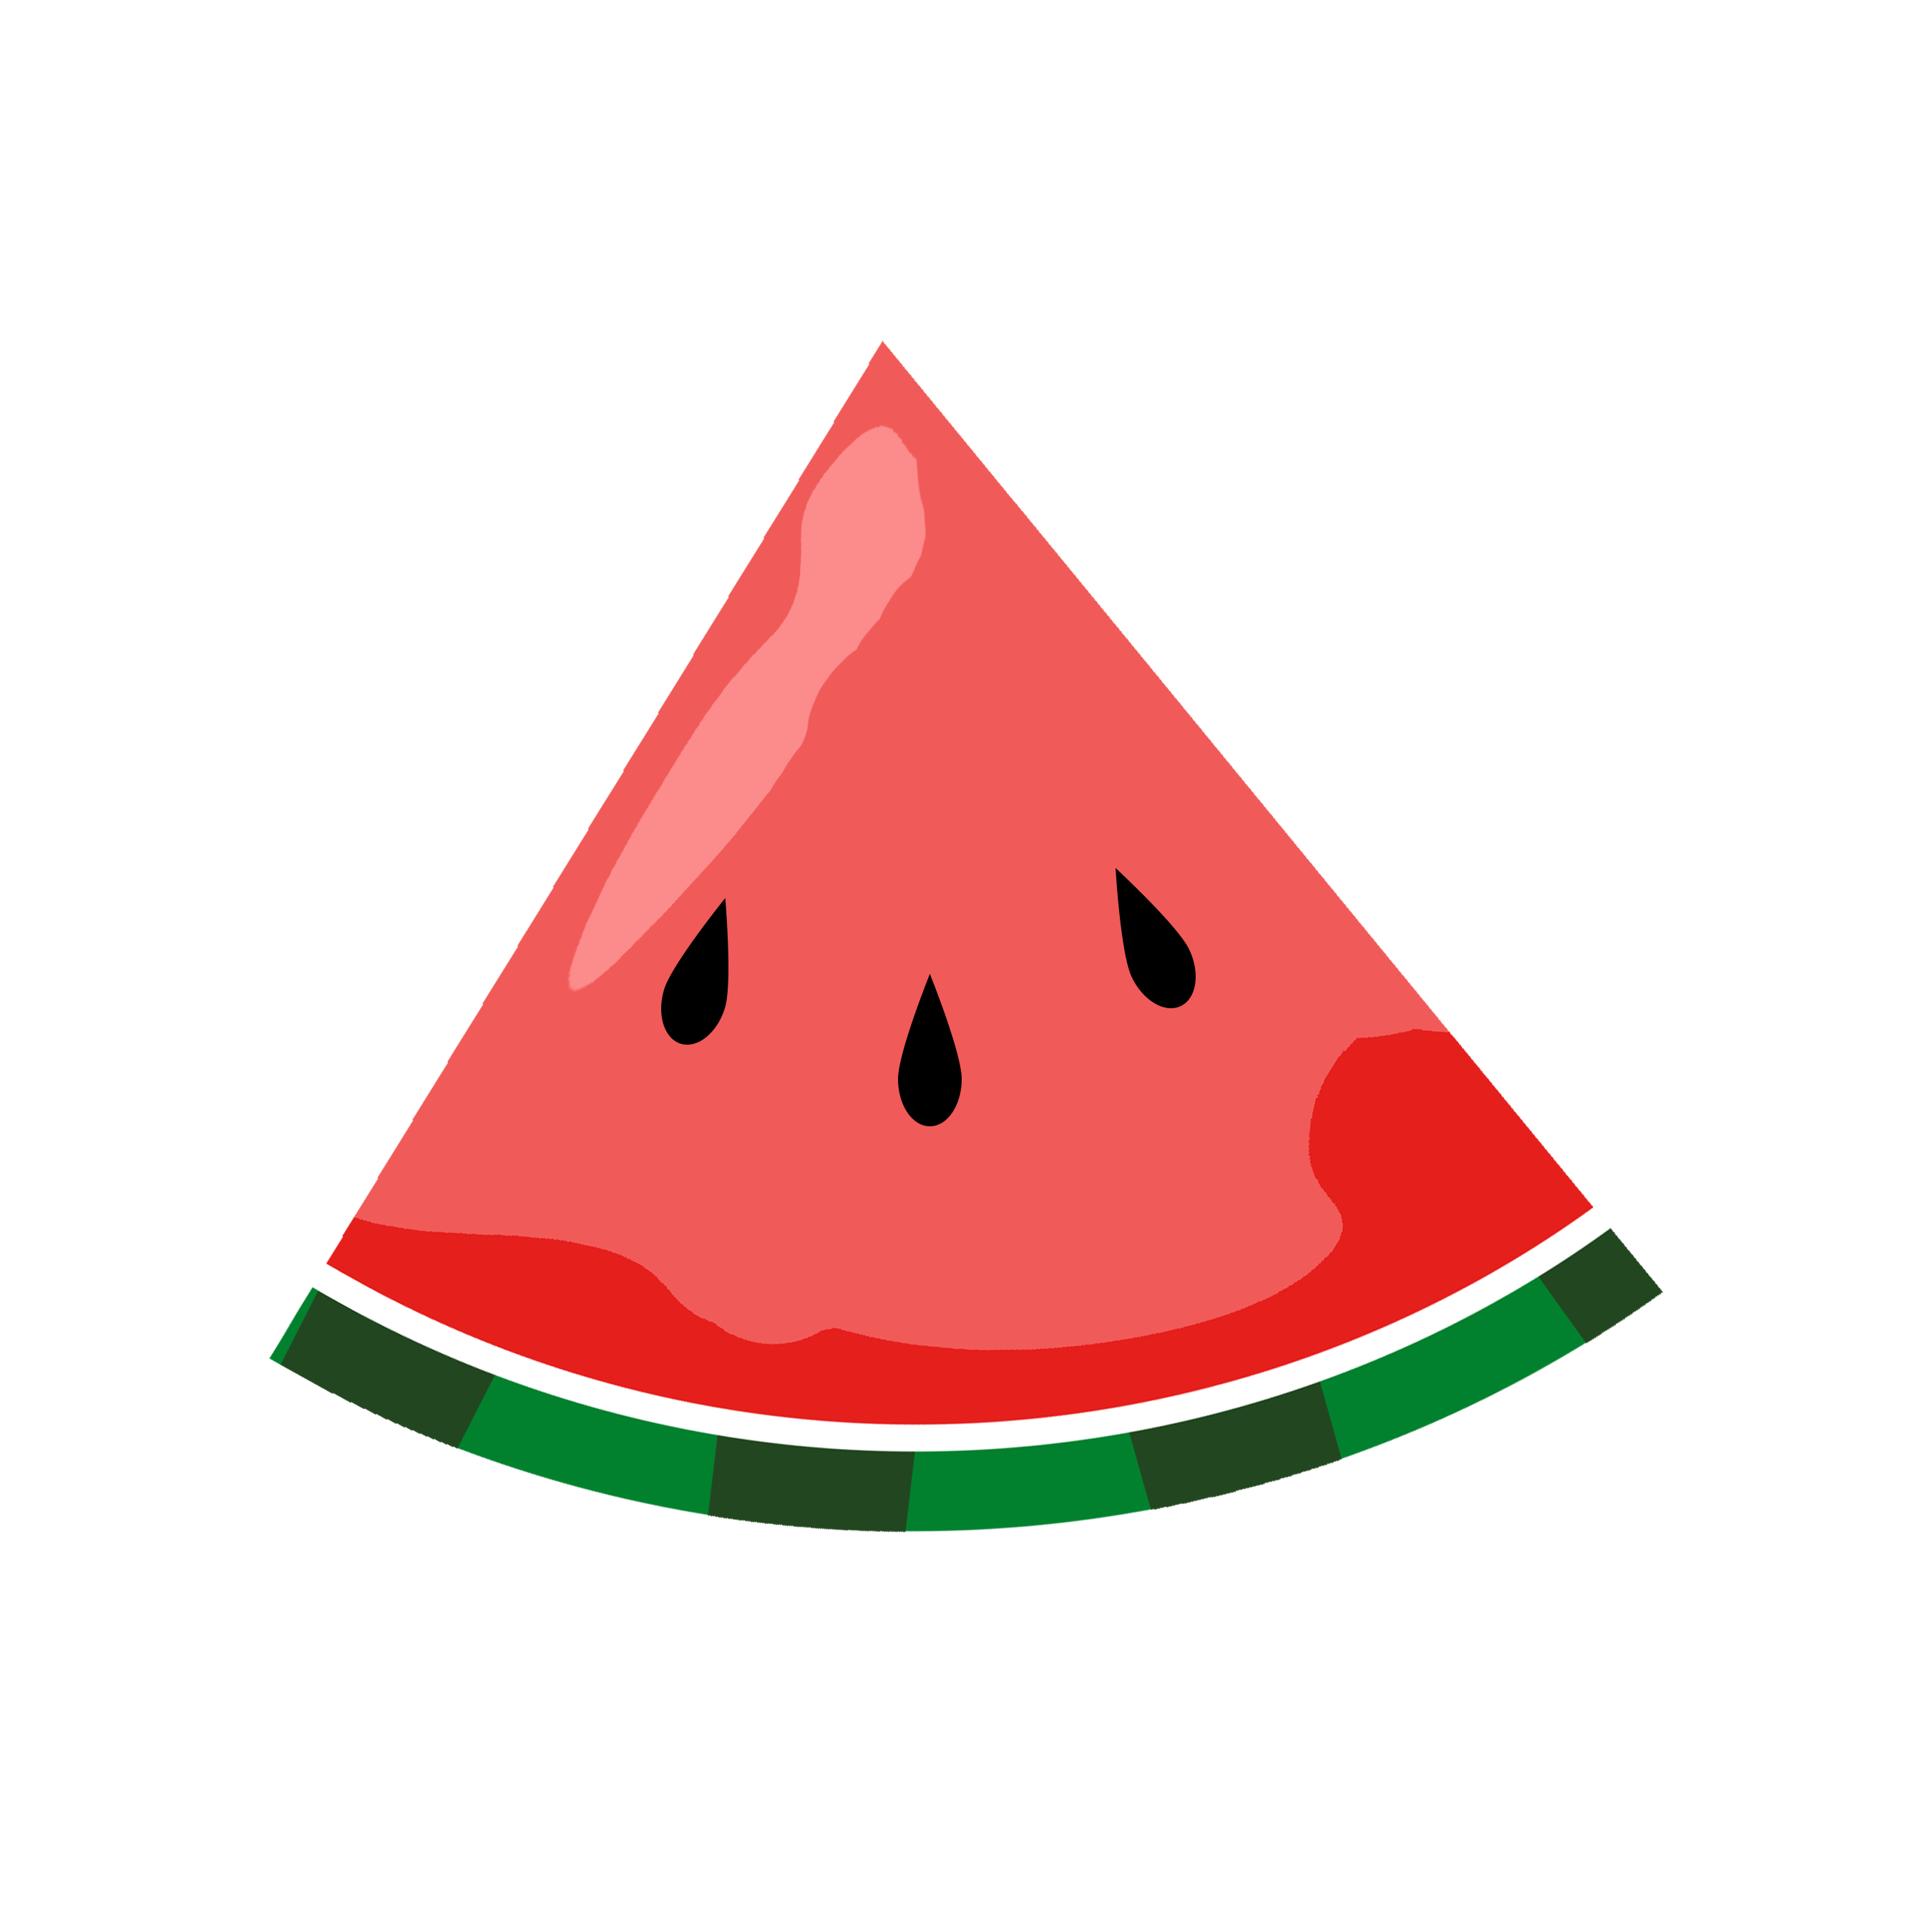 Lovely of png letters. Watermelon clipart carton